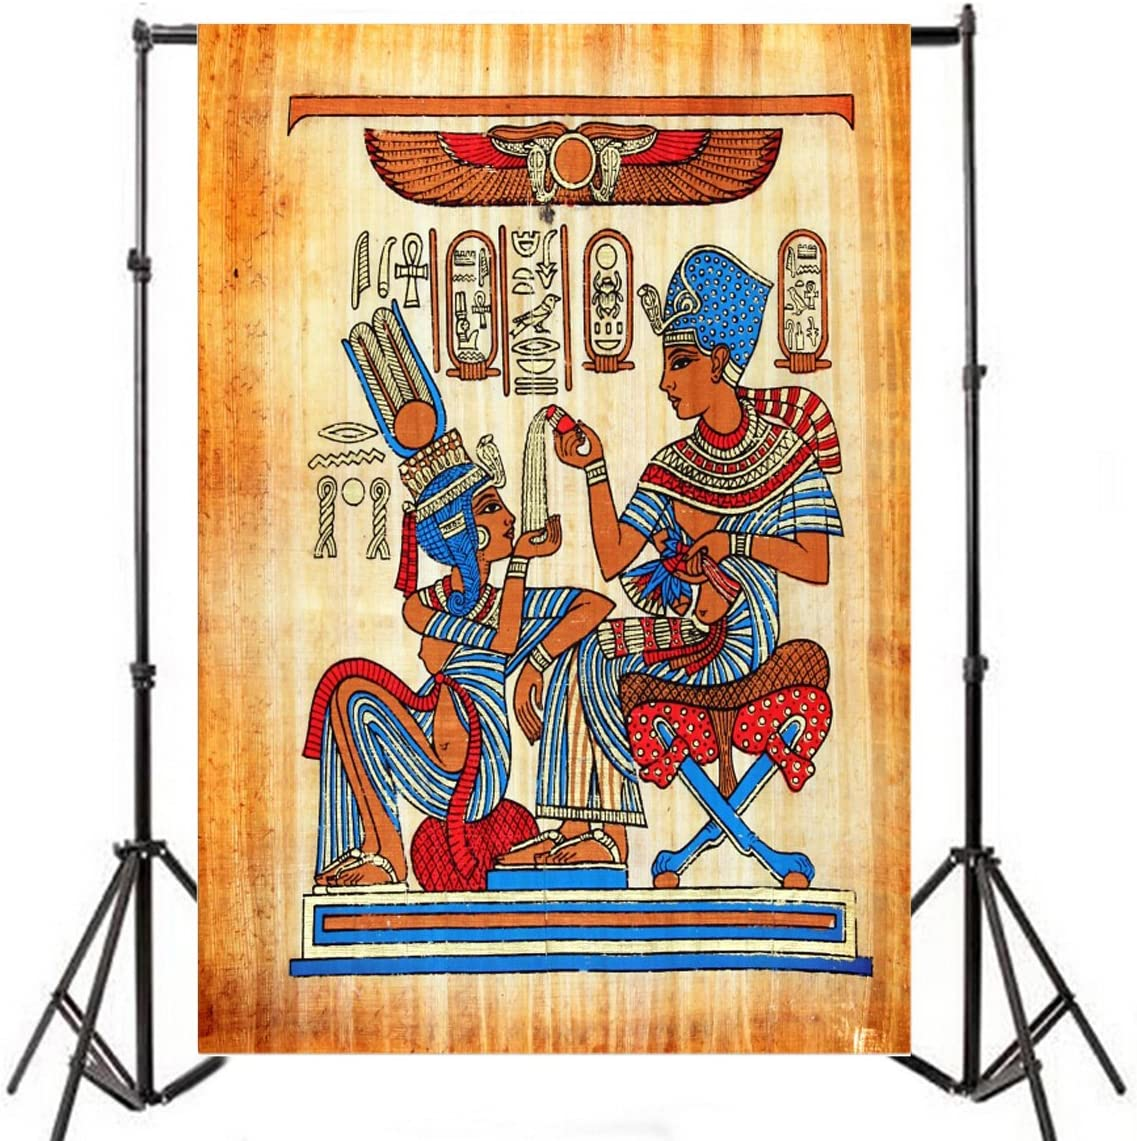 Leowefowa 6X6FT Ancient Egyptian Mural Painting Backdrop Old Egypt ...